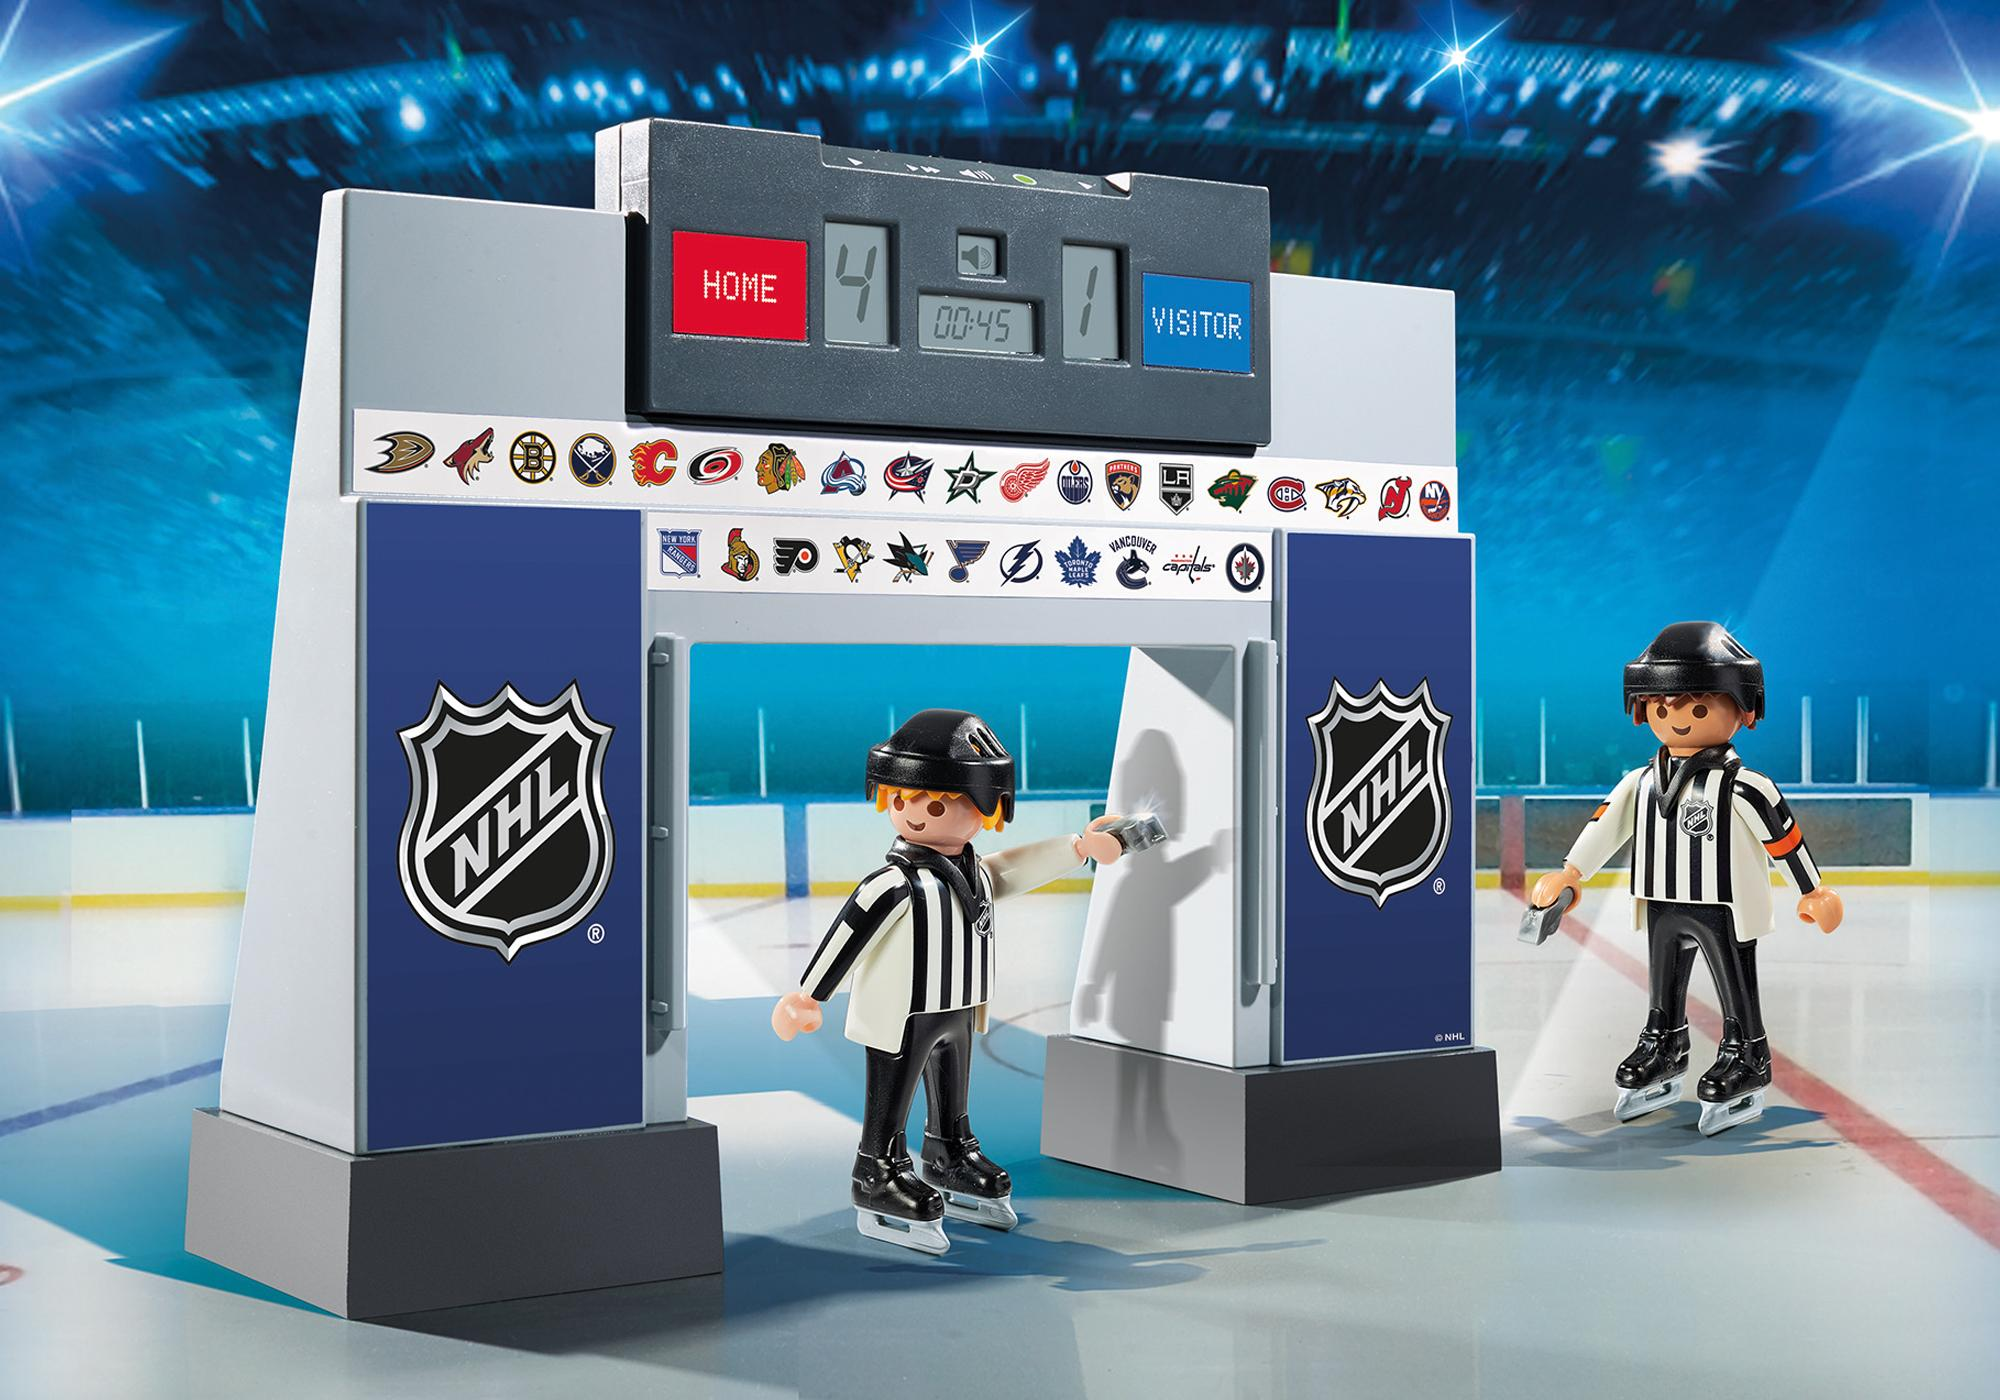 http://media.playmobil.com/i/playmobil/9016_product_detail/NHL® Score Clock  with 2 Referees